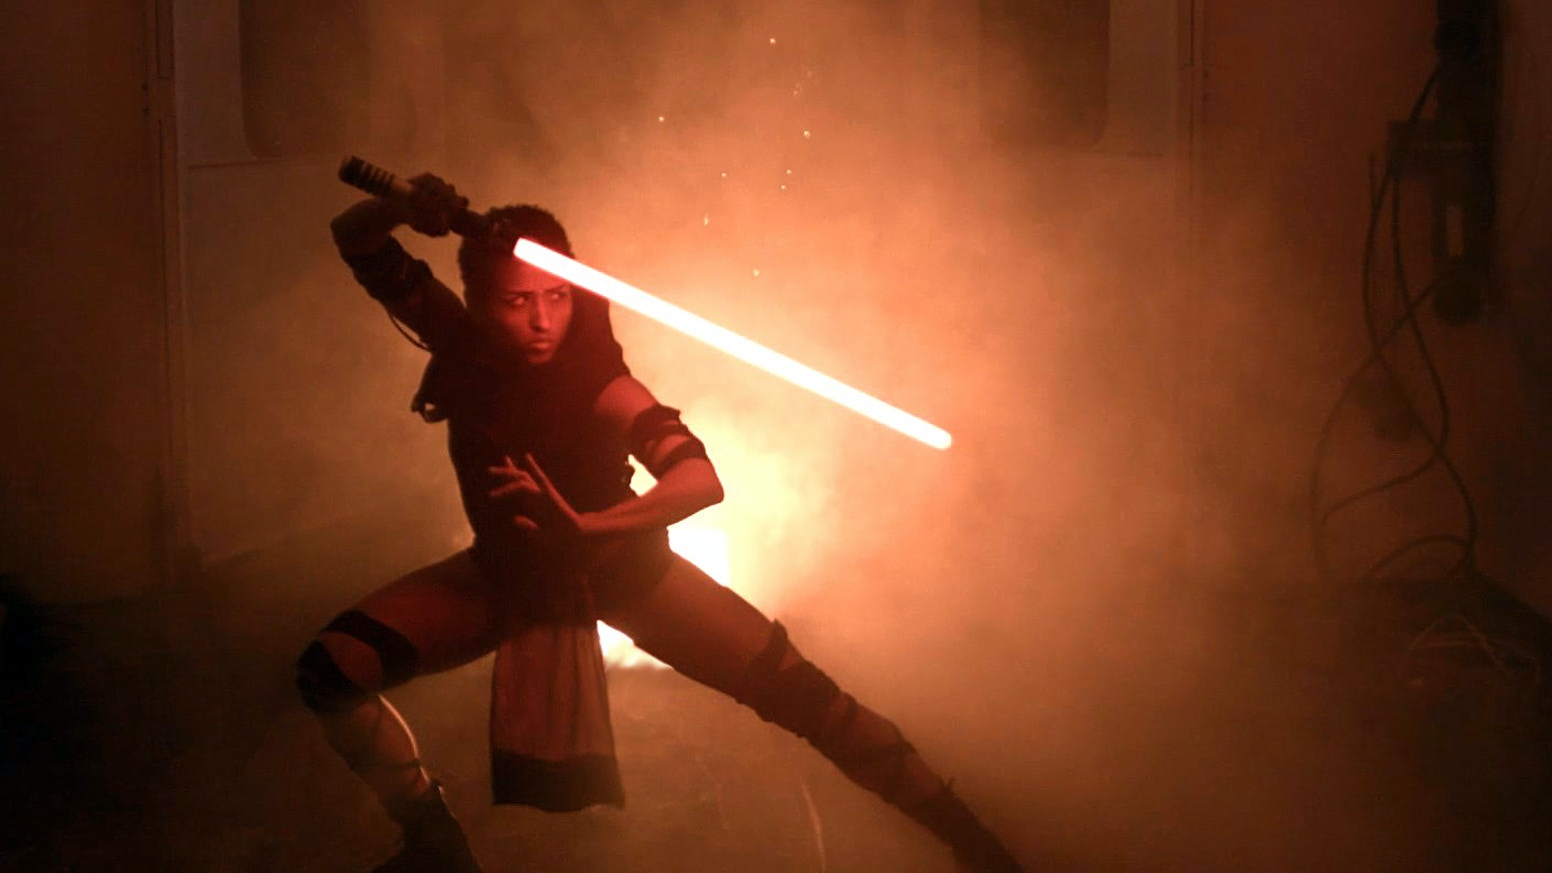 A new LED Light Saber using the latest electronic technologies and equipped with multiple high-end features.